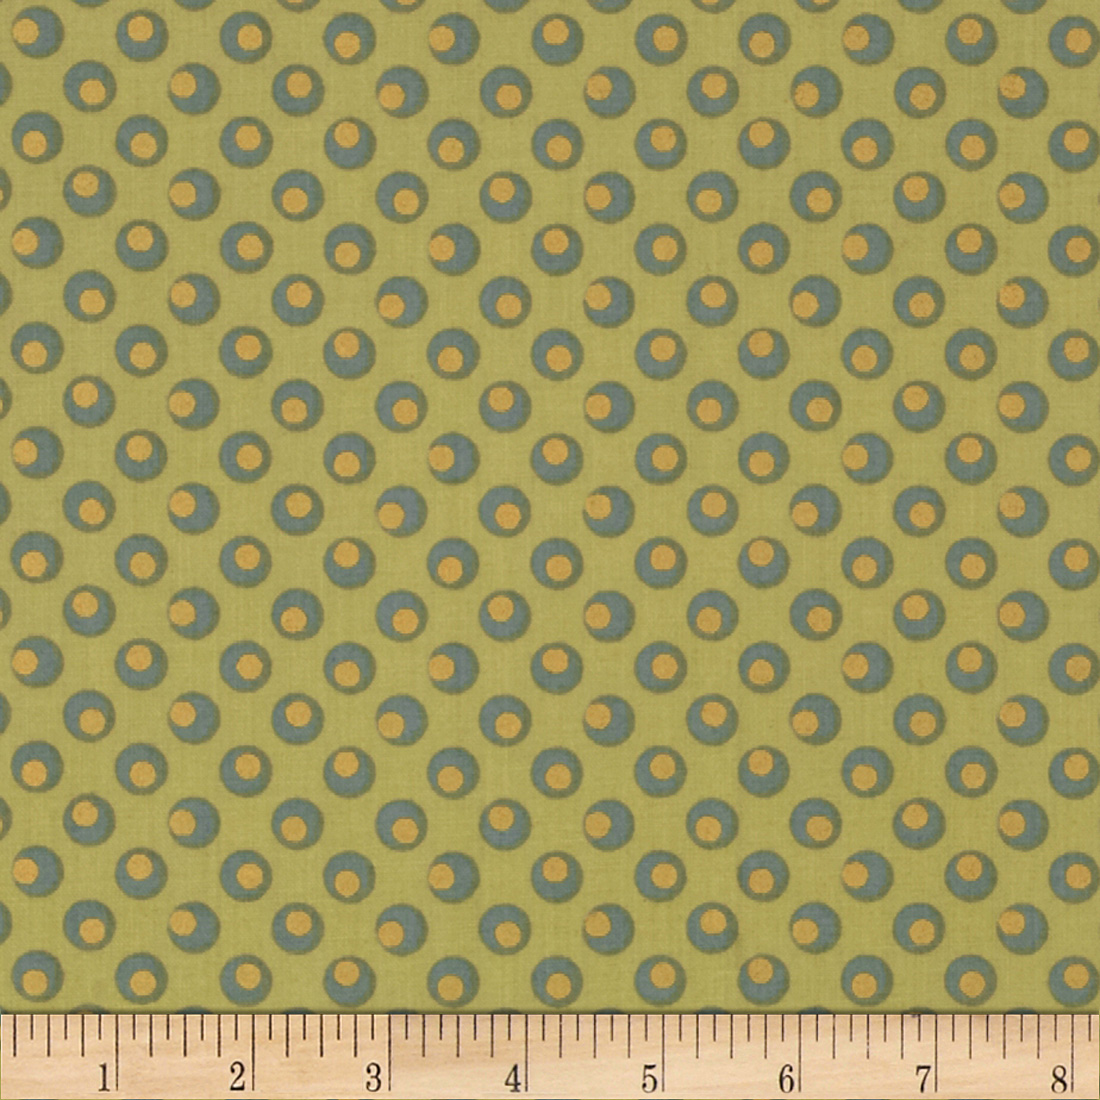 Metallic Dotted Circles Green Fabric